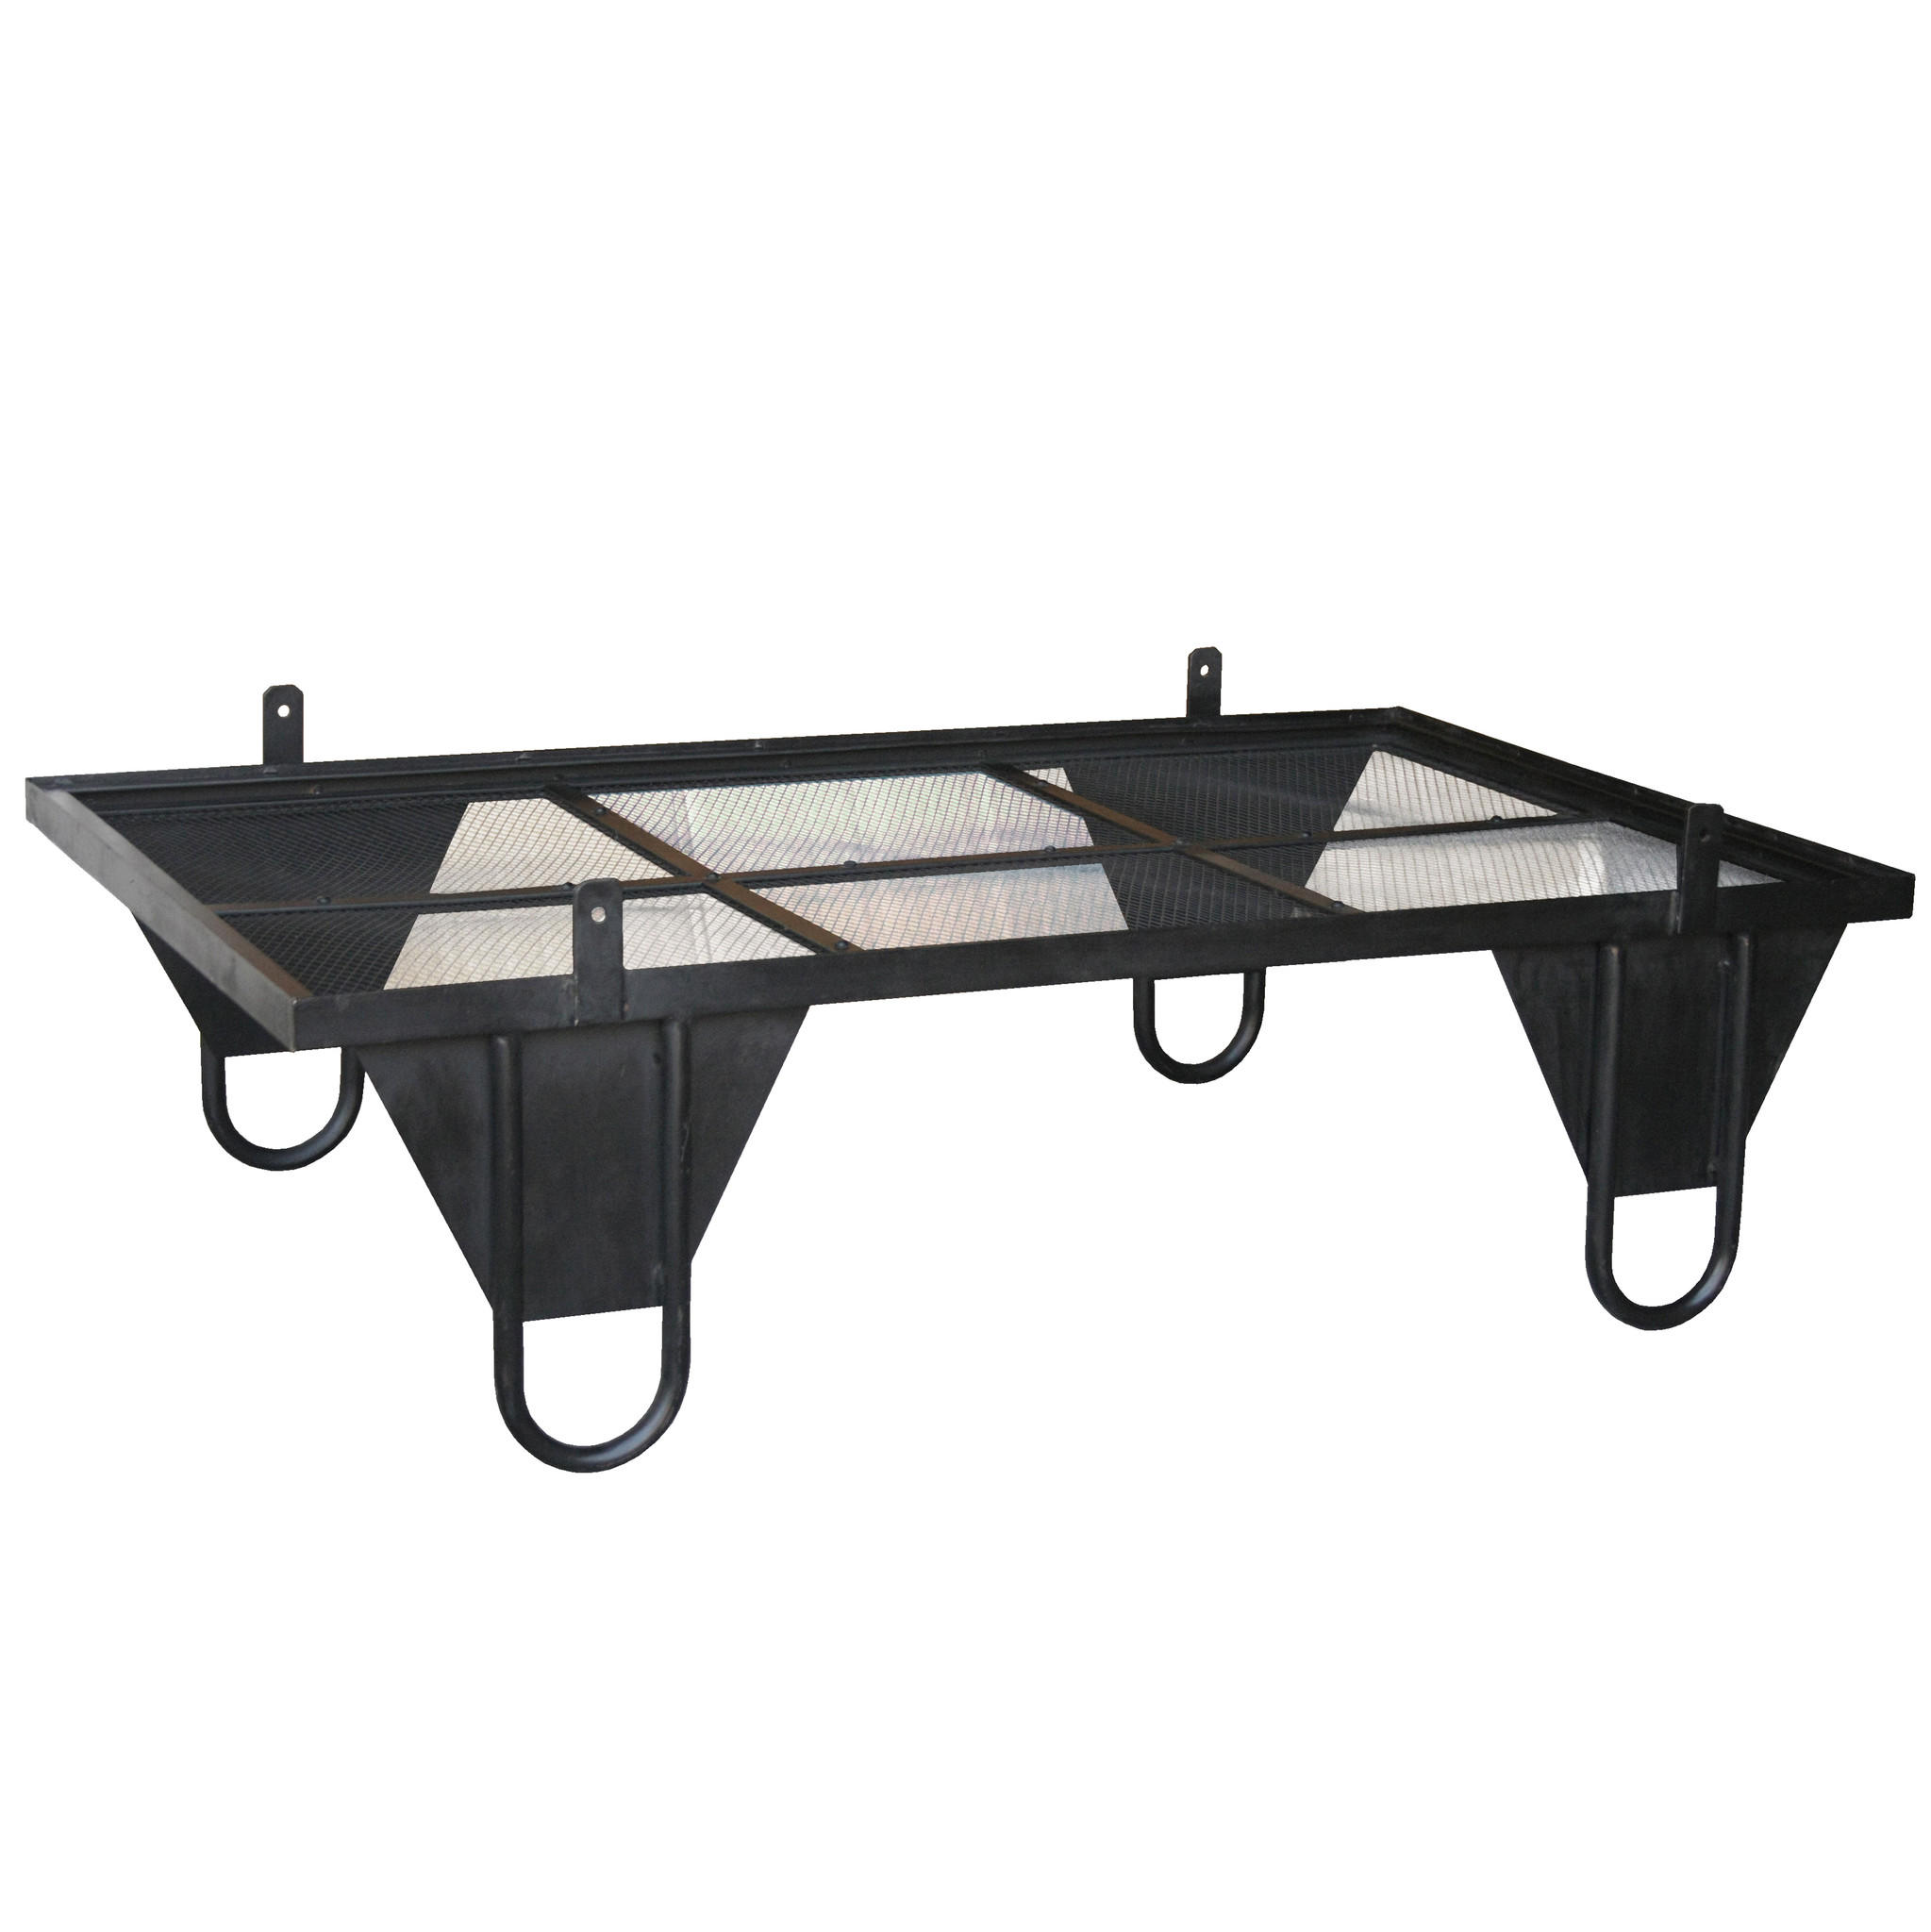 ceorl iron and glass low coffee table from wrightwood